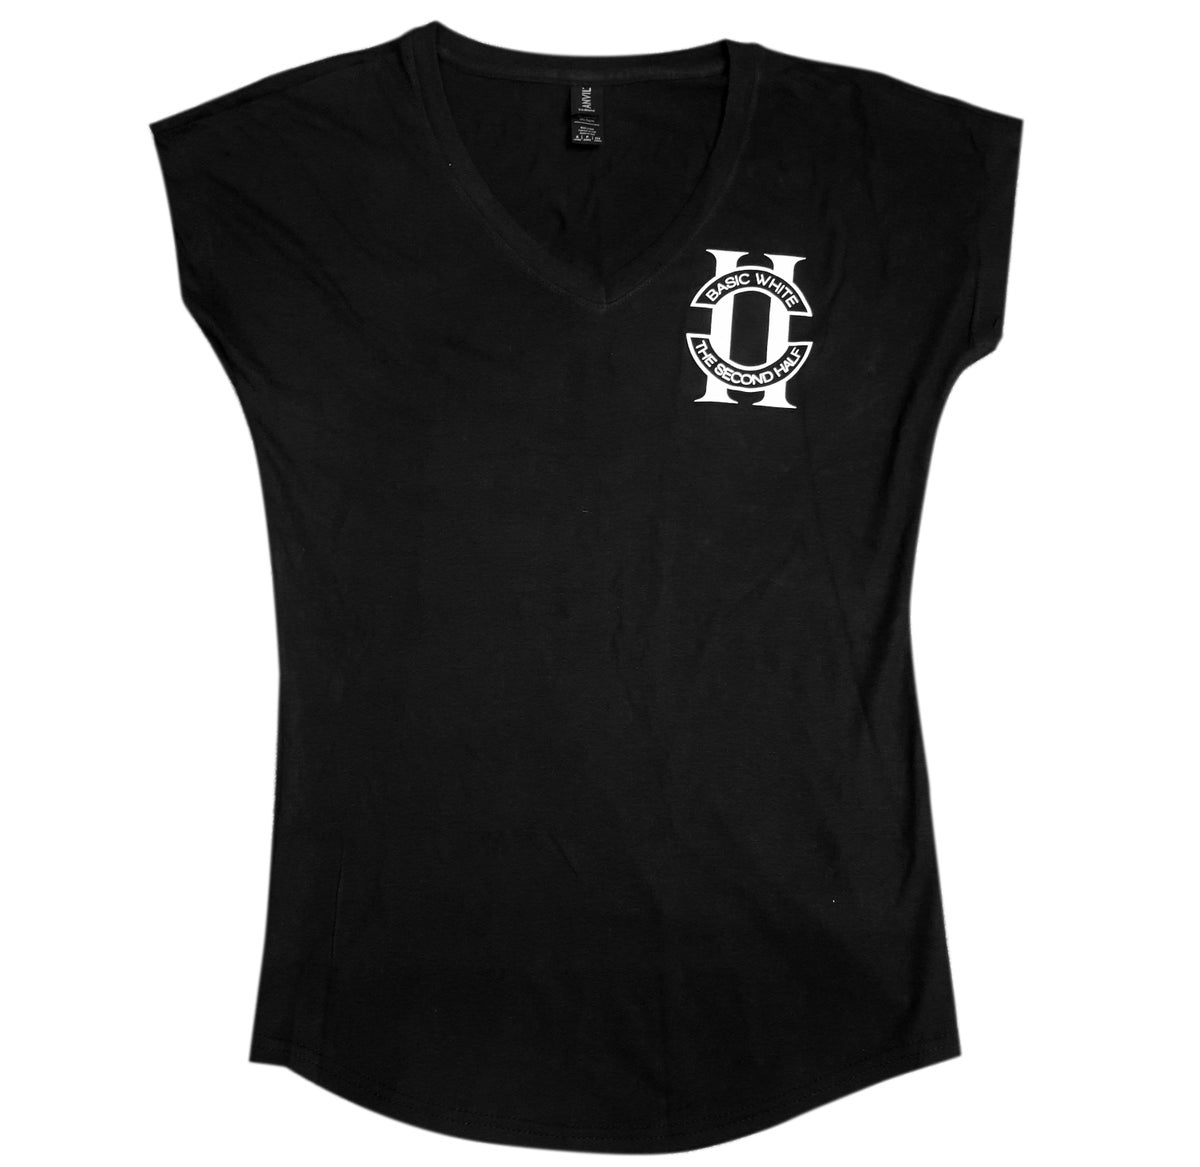 Image of The Second Half - Women's V-Neck